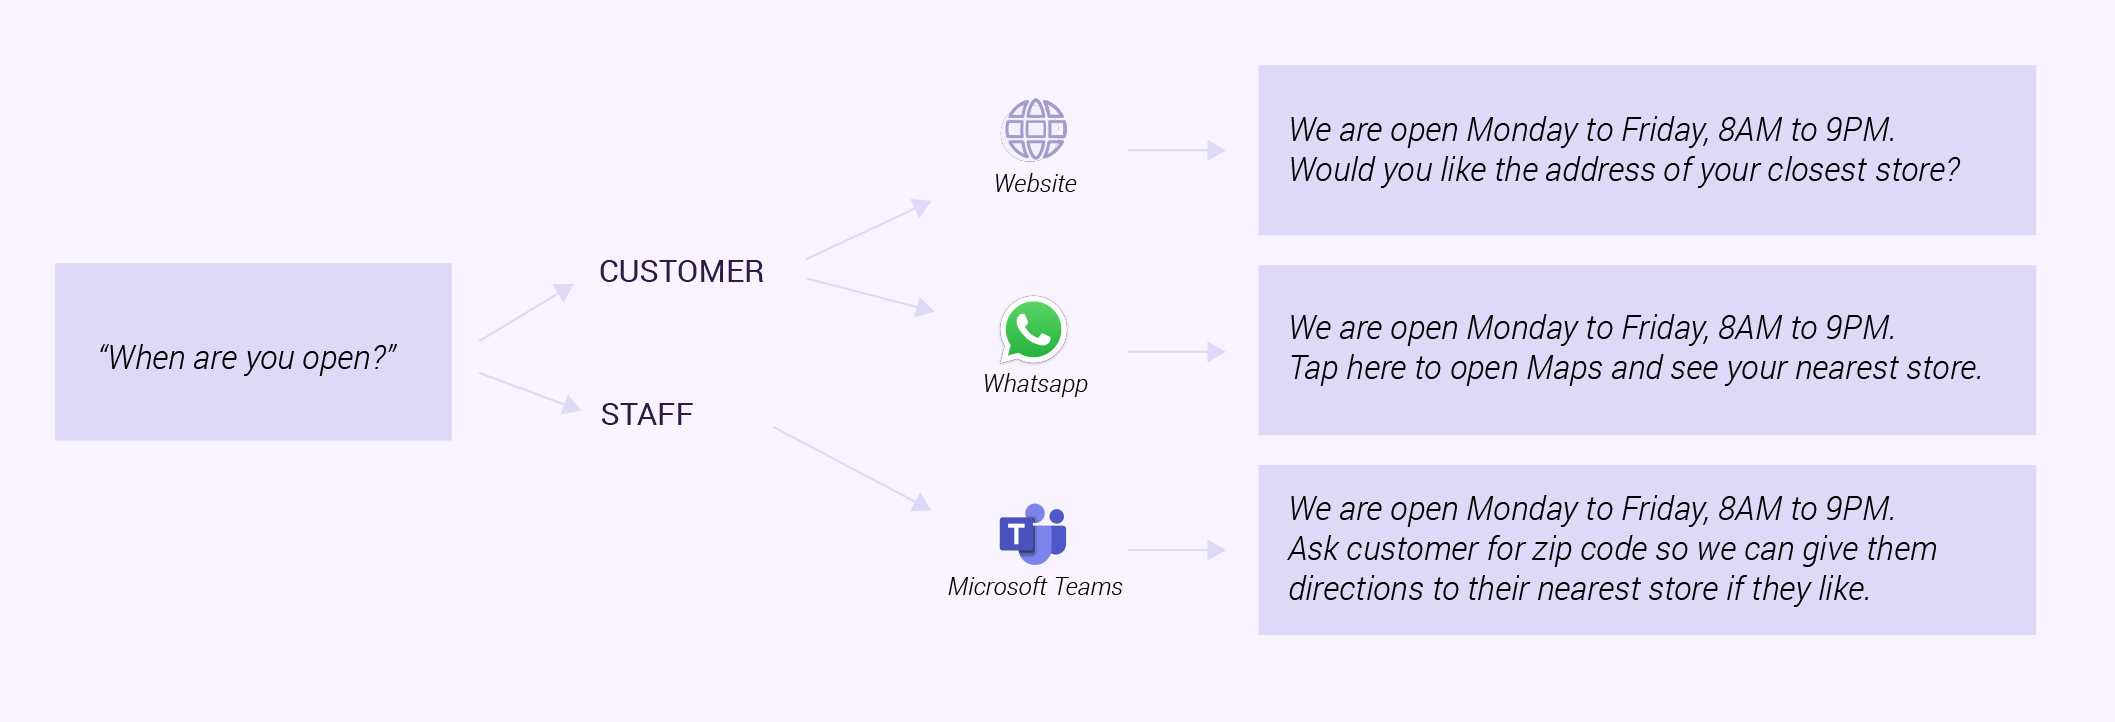 Chatbots can give different answers depending on what channel or platform they're chatting on. Source: GetJenny